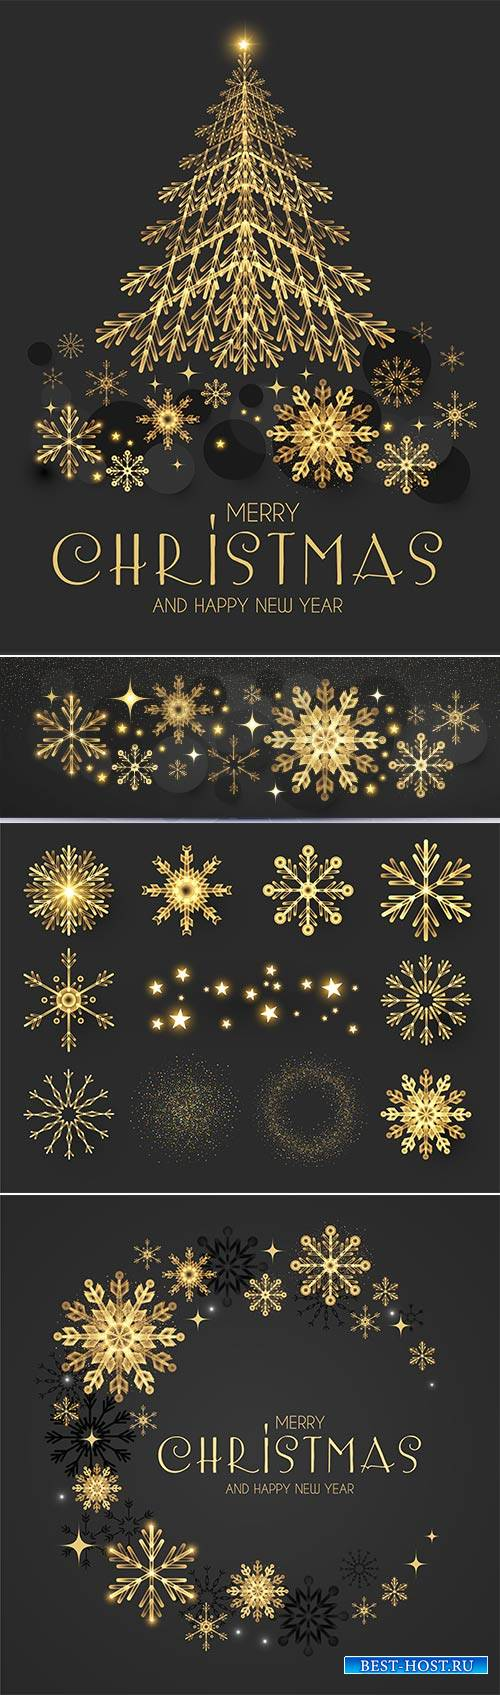 Christmas vector illustration with golden snowflakes